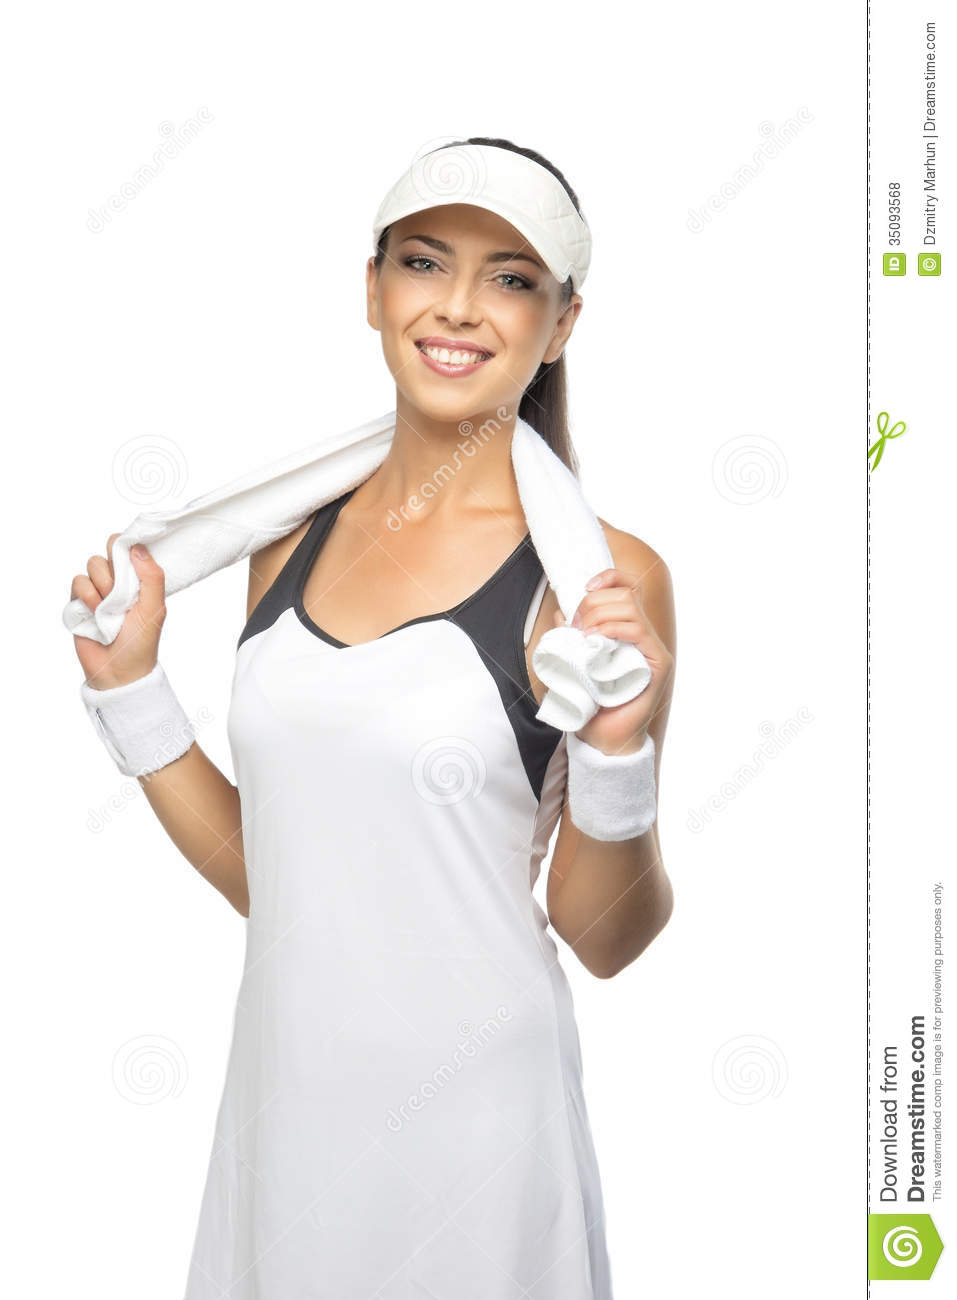 Female tennis player outfit